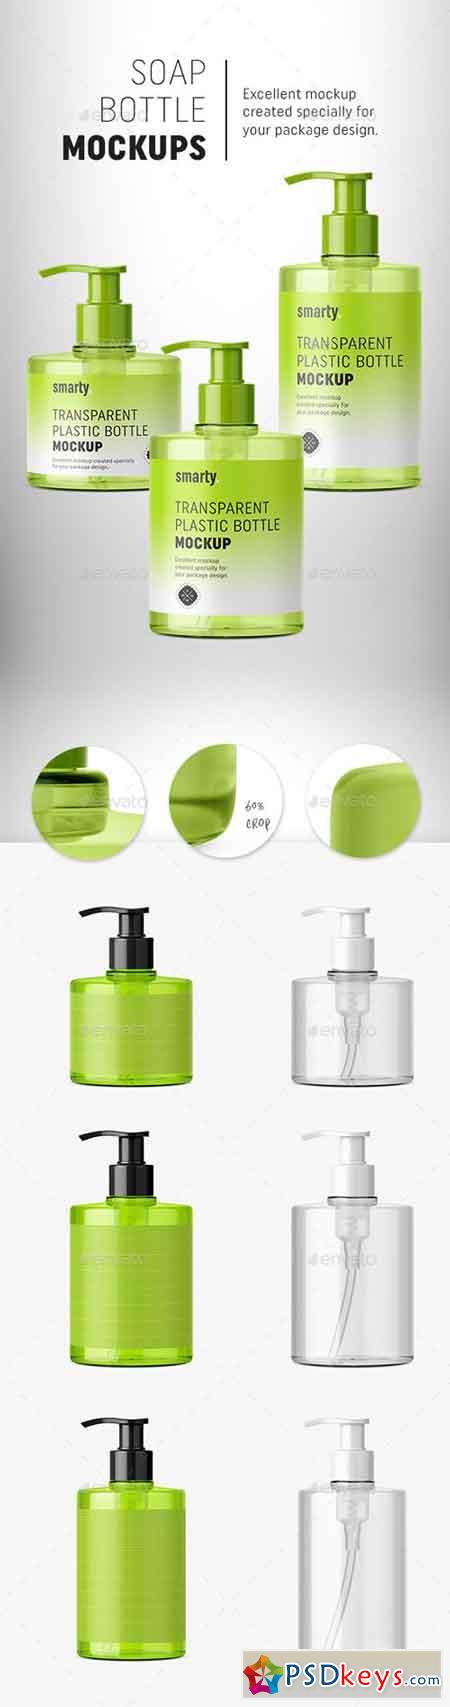 Soap Bottle Mockups 20202928